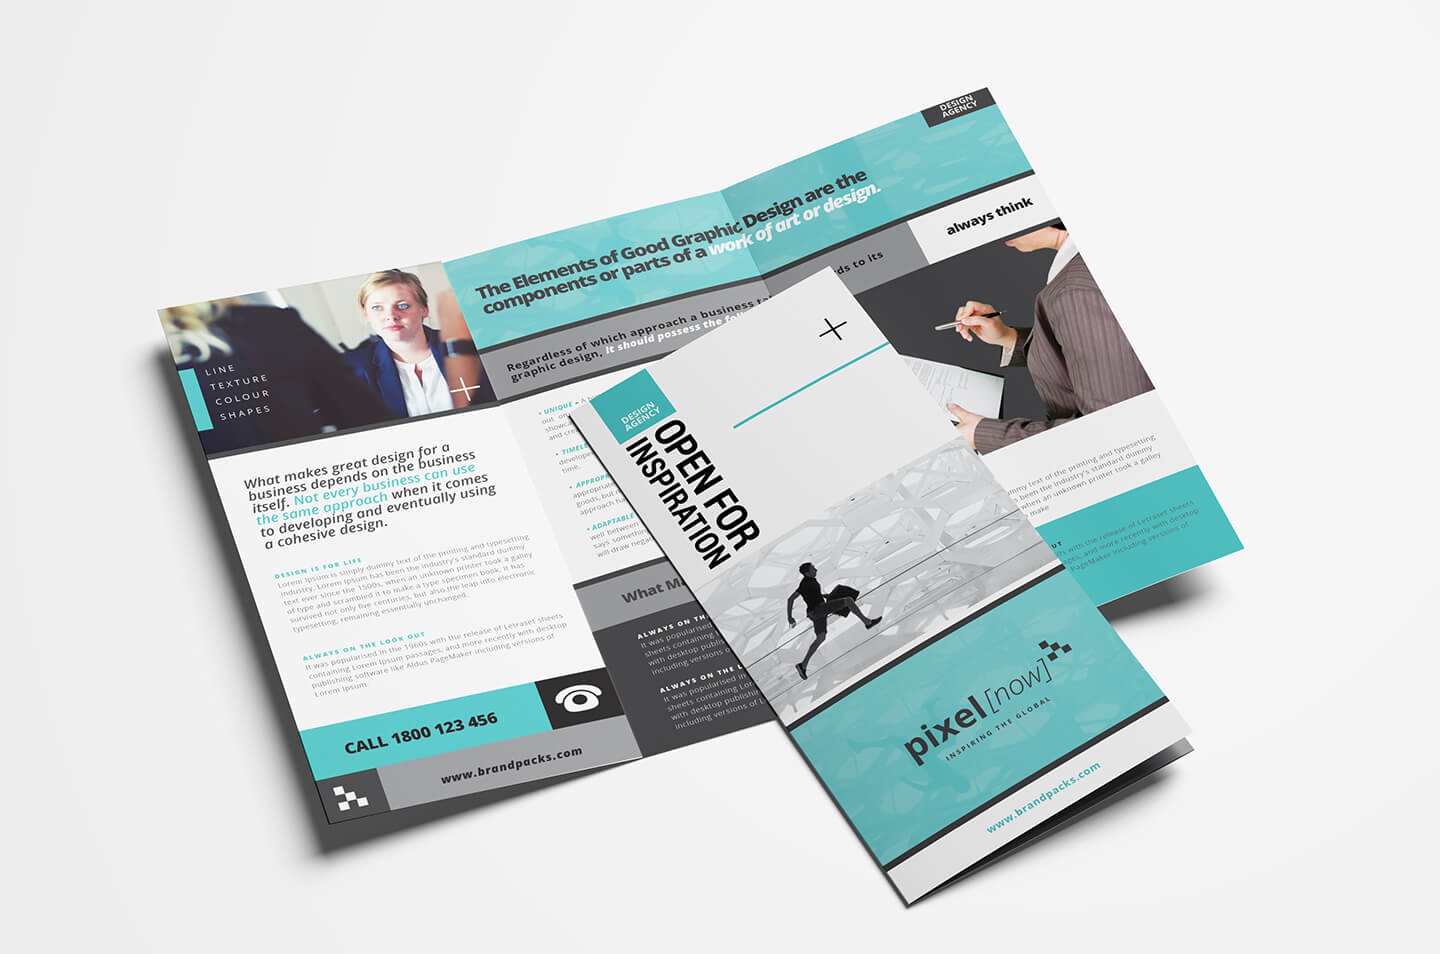 Free Business Trifold Brochure Template In Psd & Vector Intended For Free Tri Fold Business Brochure Templates